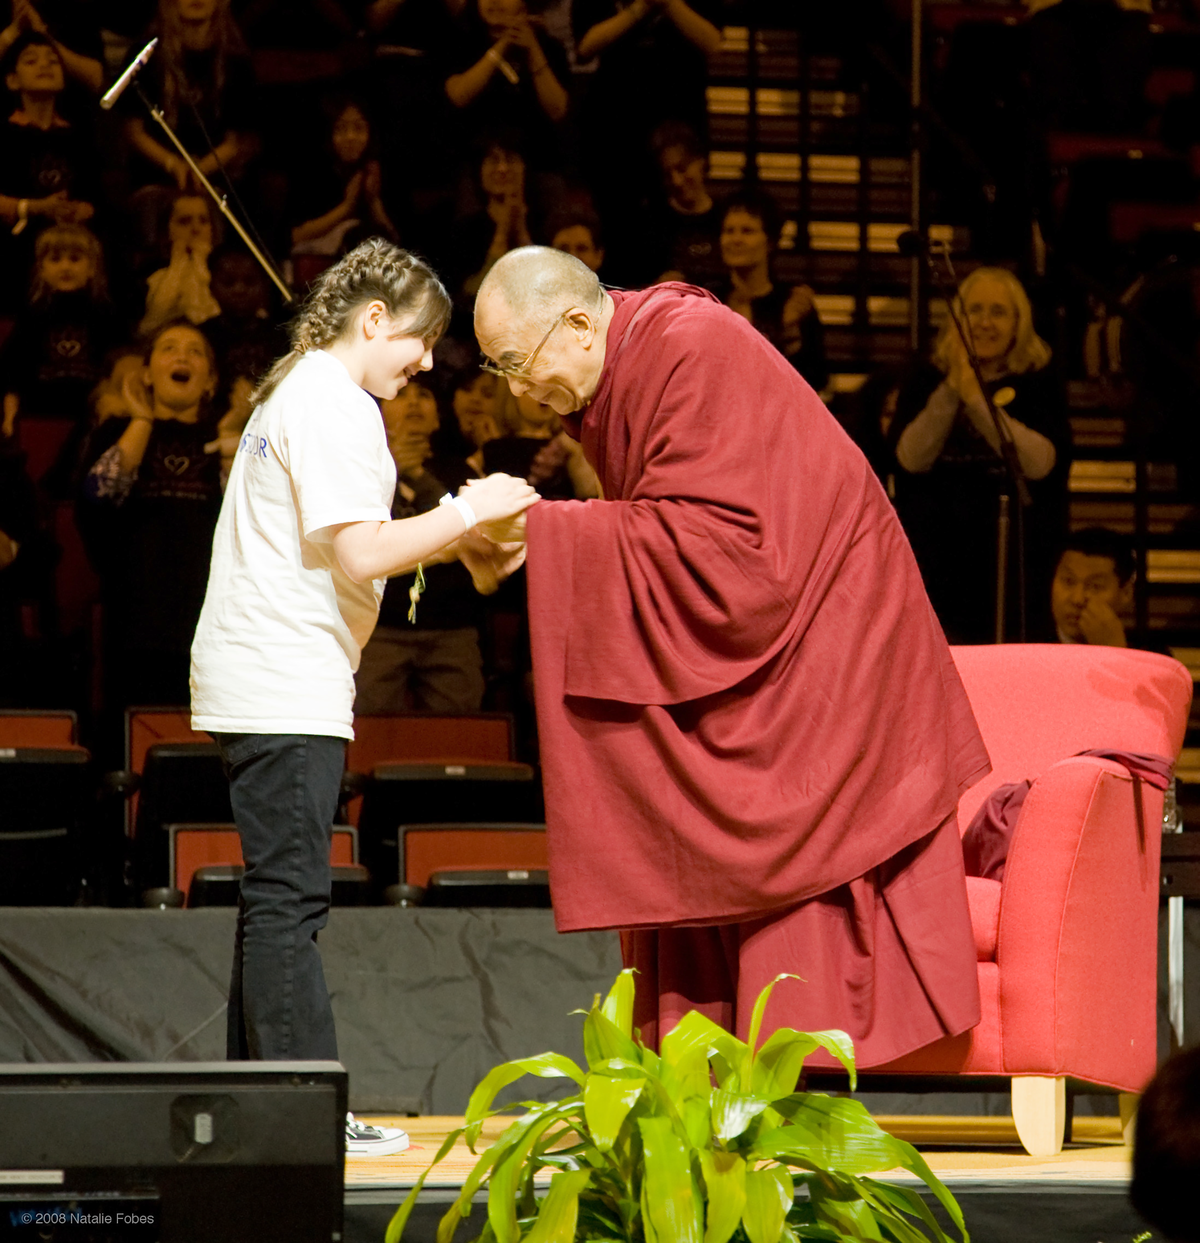 Jessica with His Holiness the Dalai Lama.